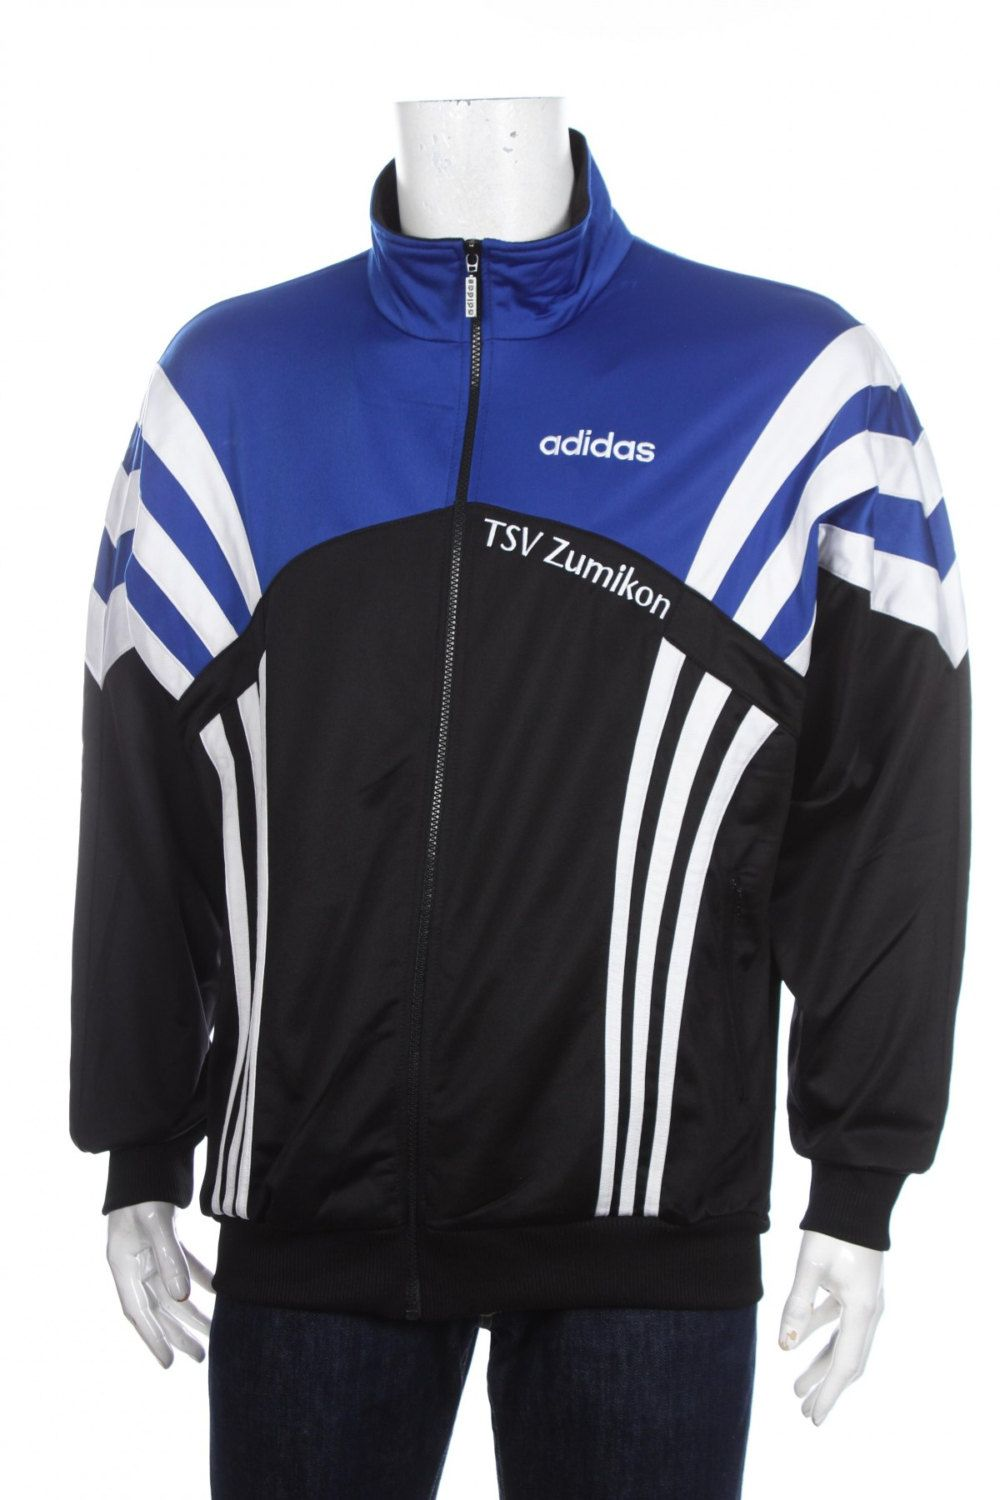 Vintage 90s Adidas Windbraker Tracksuit Top jacket Color block ...